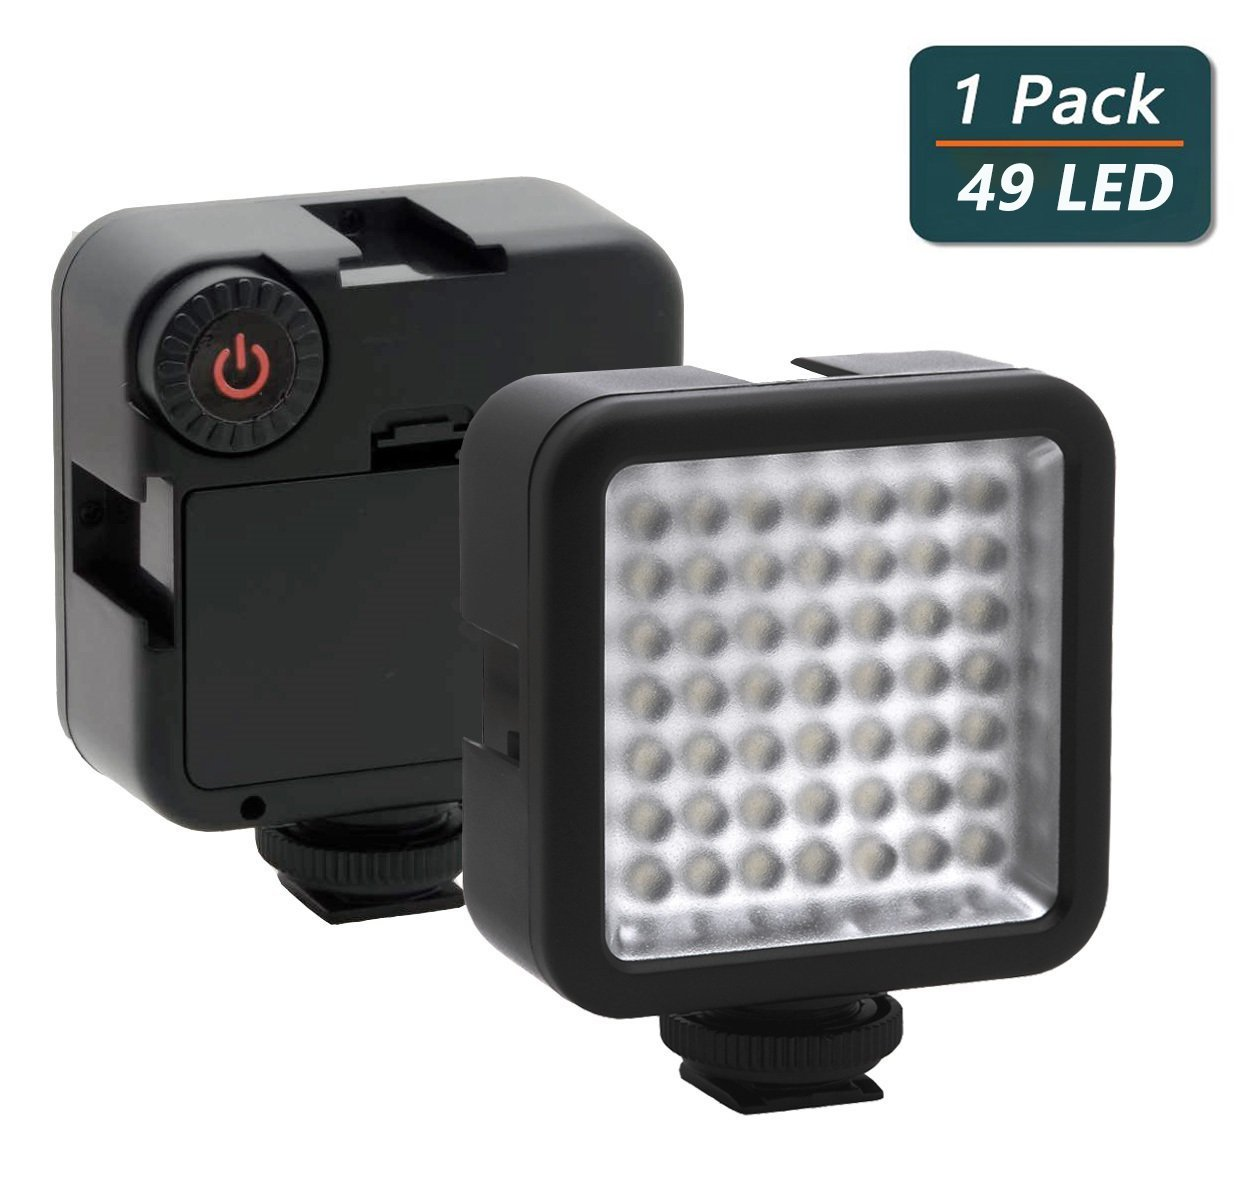 Ultra Bright LED Video Light,Elivern Perfect 49 Led Camera Lighting,3200-6000K Dimmable Portable Camera Light Panel,Mini Beauty light for Mobile Phones,Canon,Nikon,Sony and Other DLSR Cameras